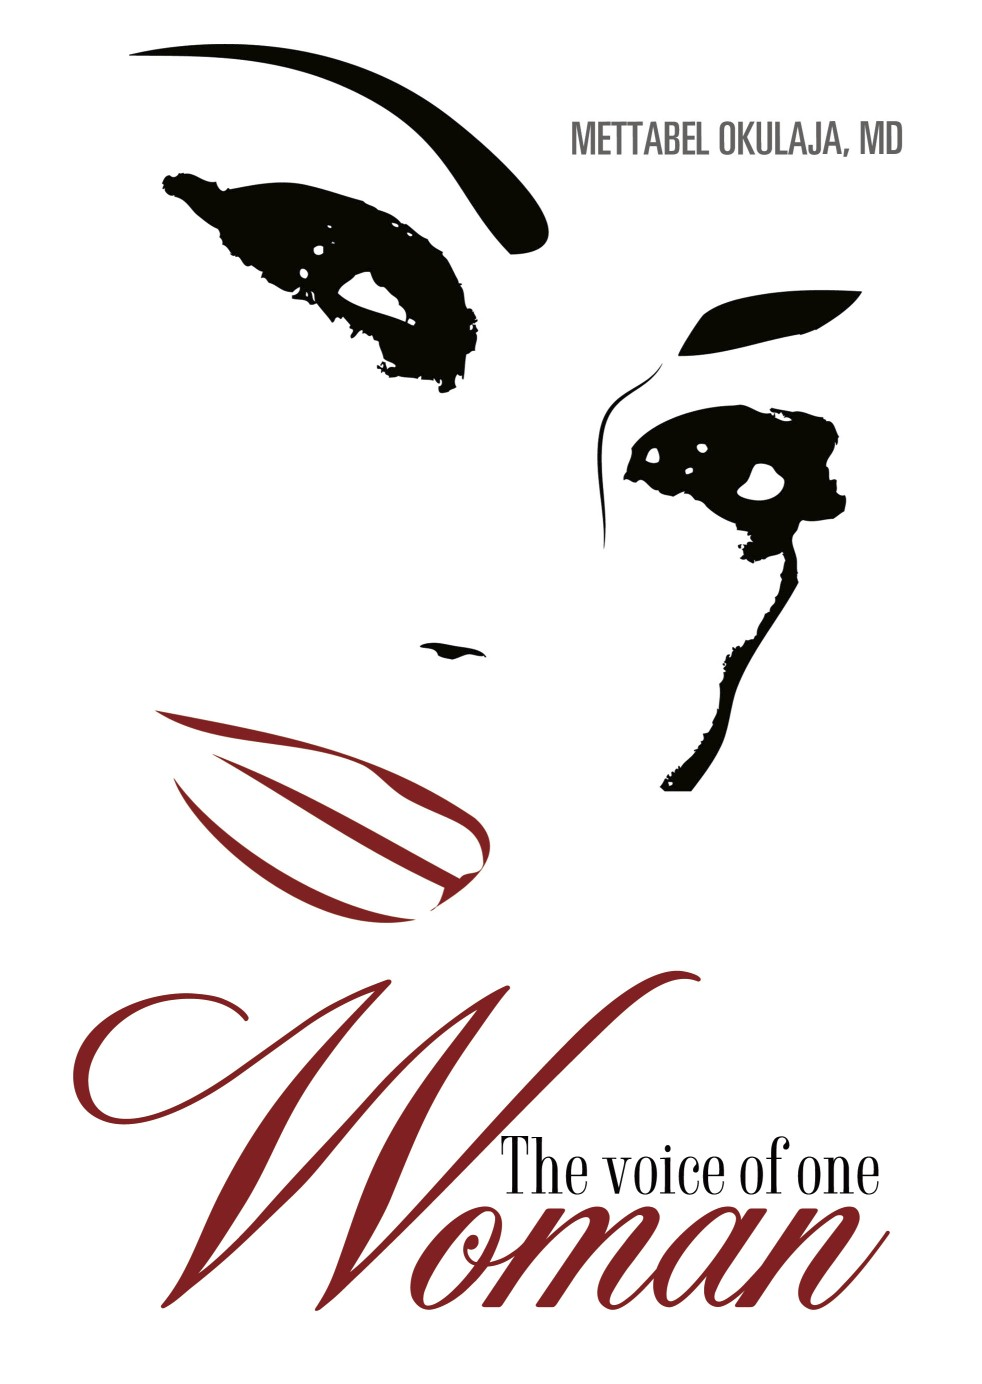 The Voice of One Woman